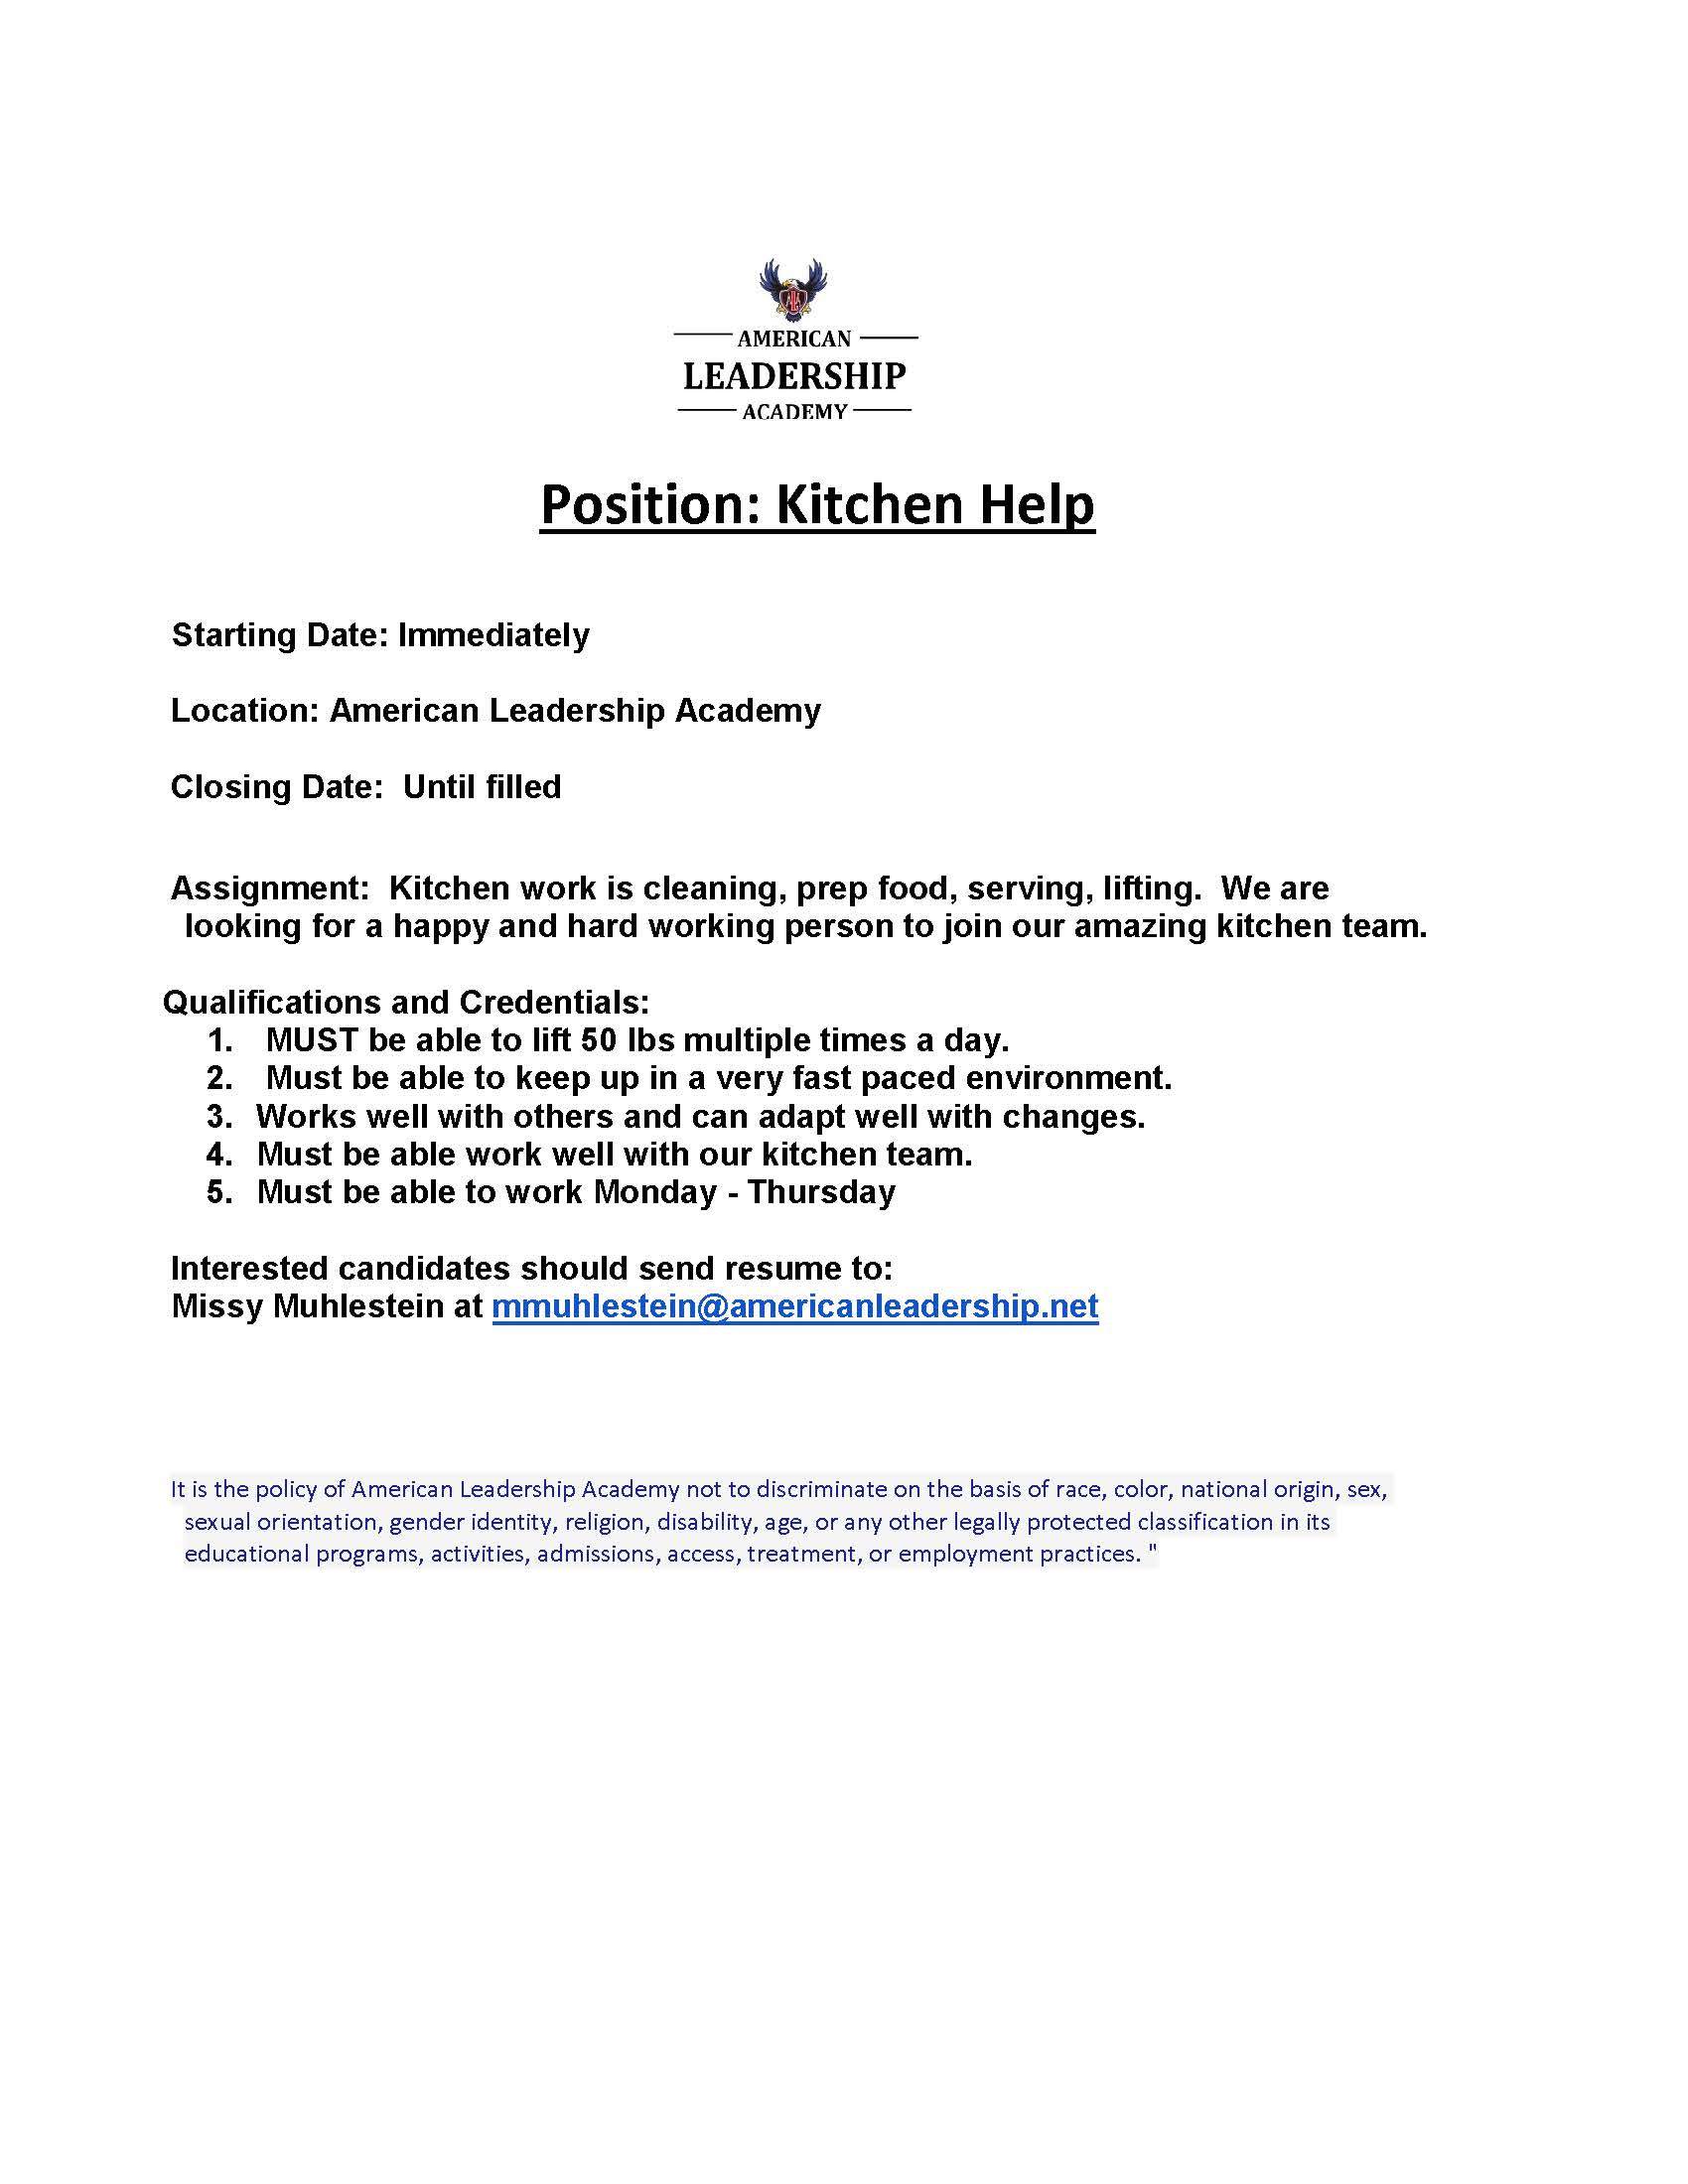 American Leadership Academy Is Looking For A Happy And Hard Working Person To Join Our Amazing Kitchen Team View The Job Description Below Or Download It